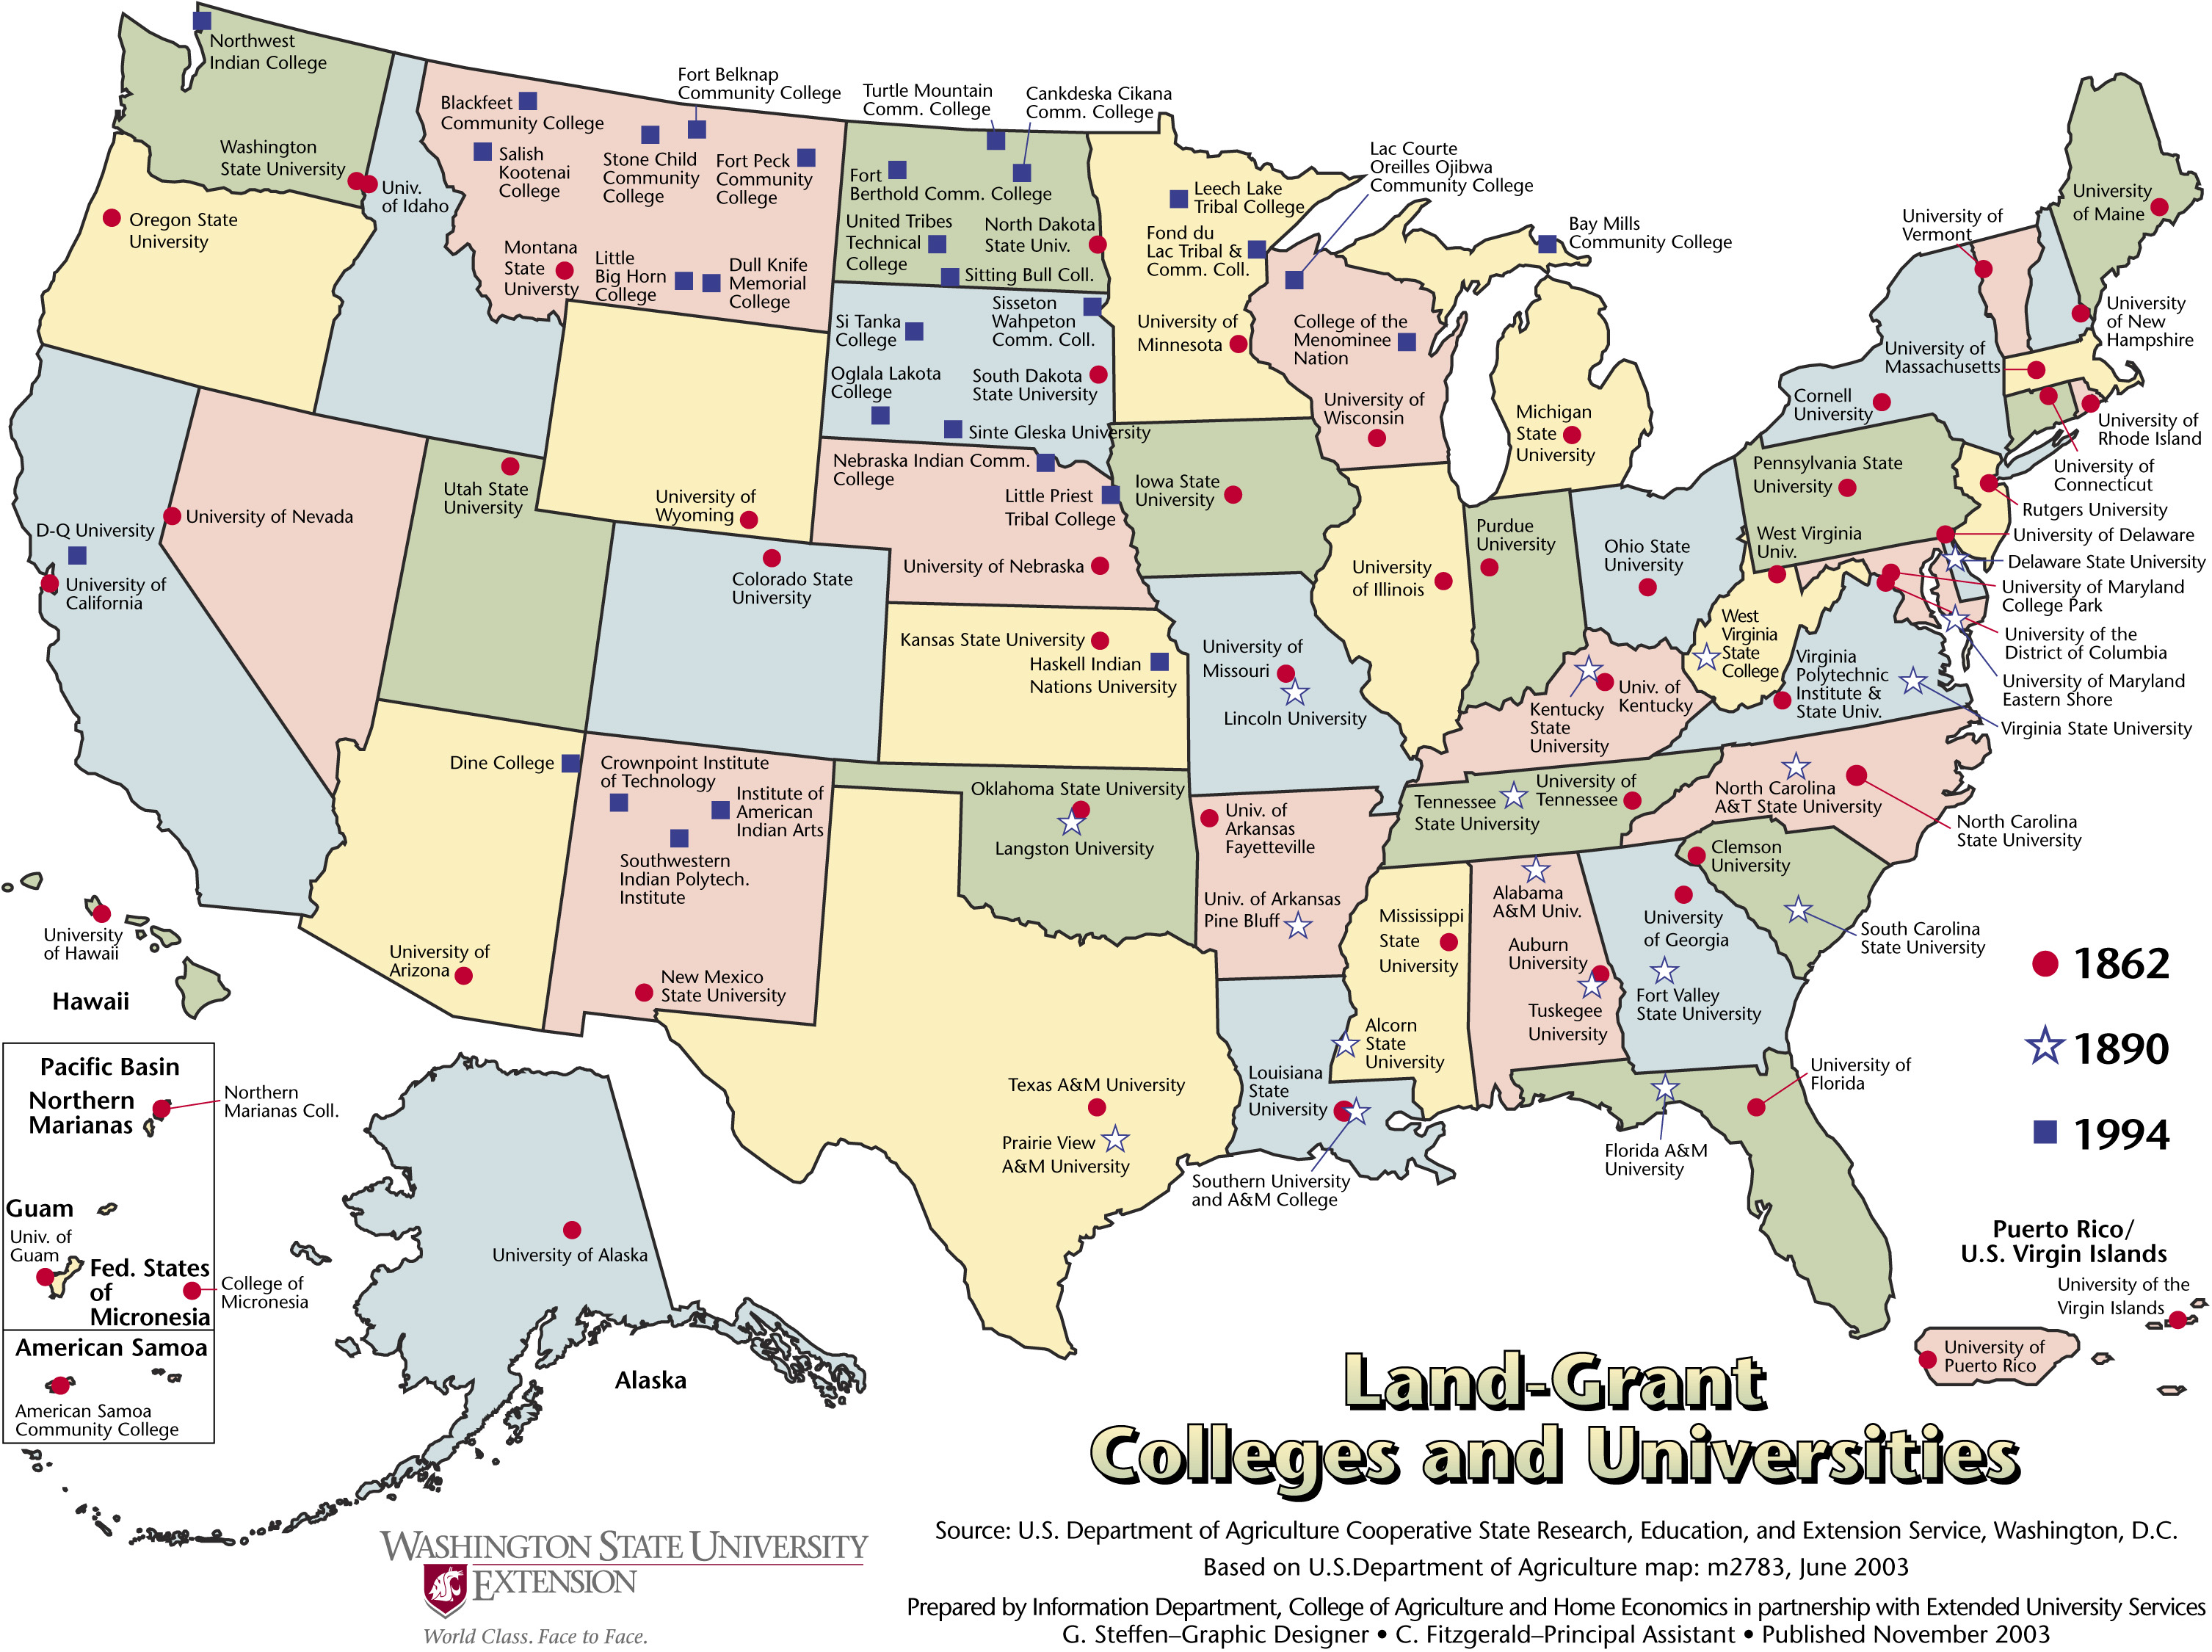 US College And University Land Grant Map USA Mappery - Us map of universities and colleges